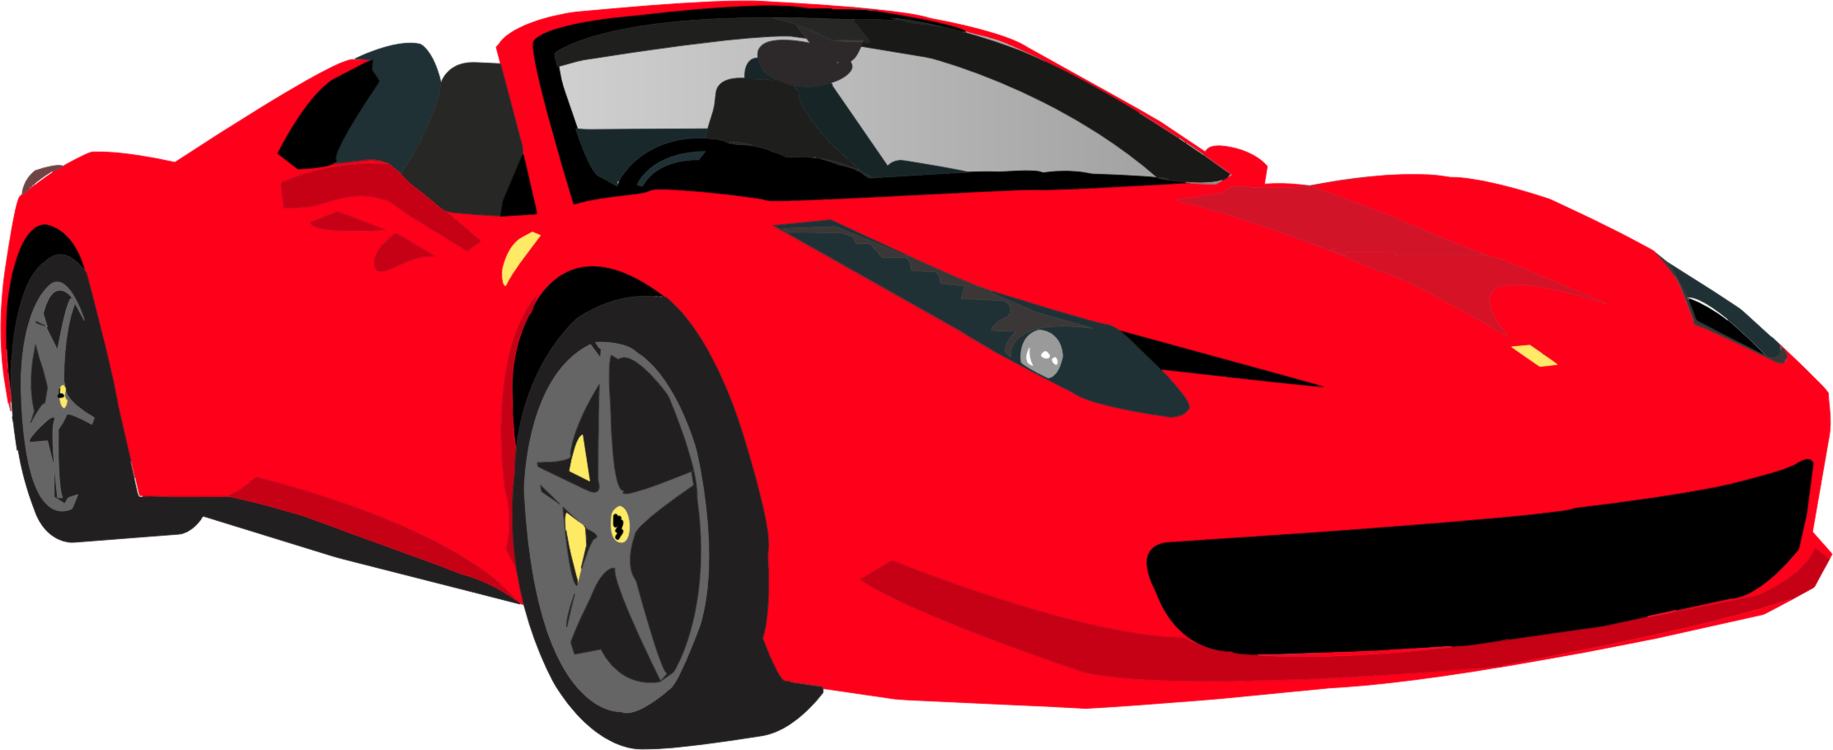 Laferrari drawing car ferrari. S p a f